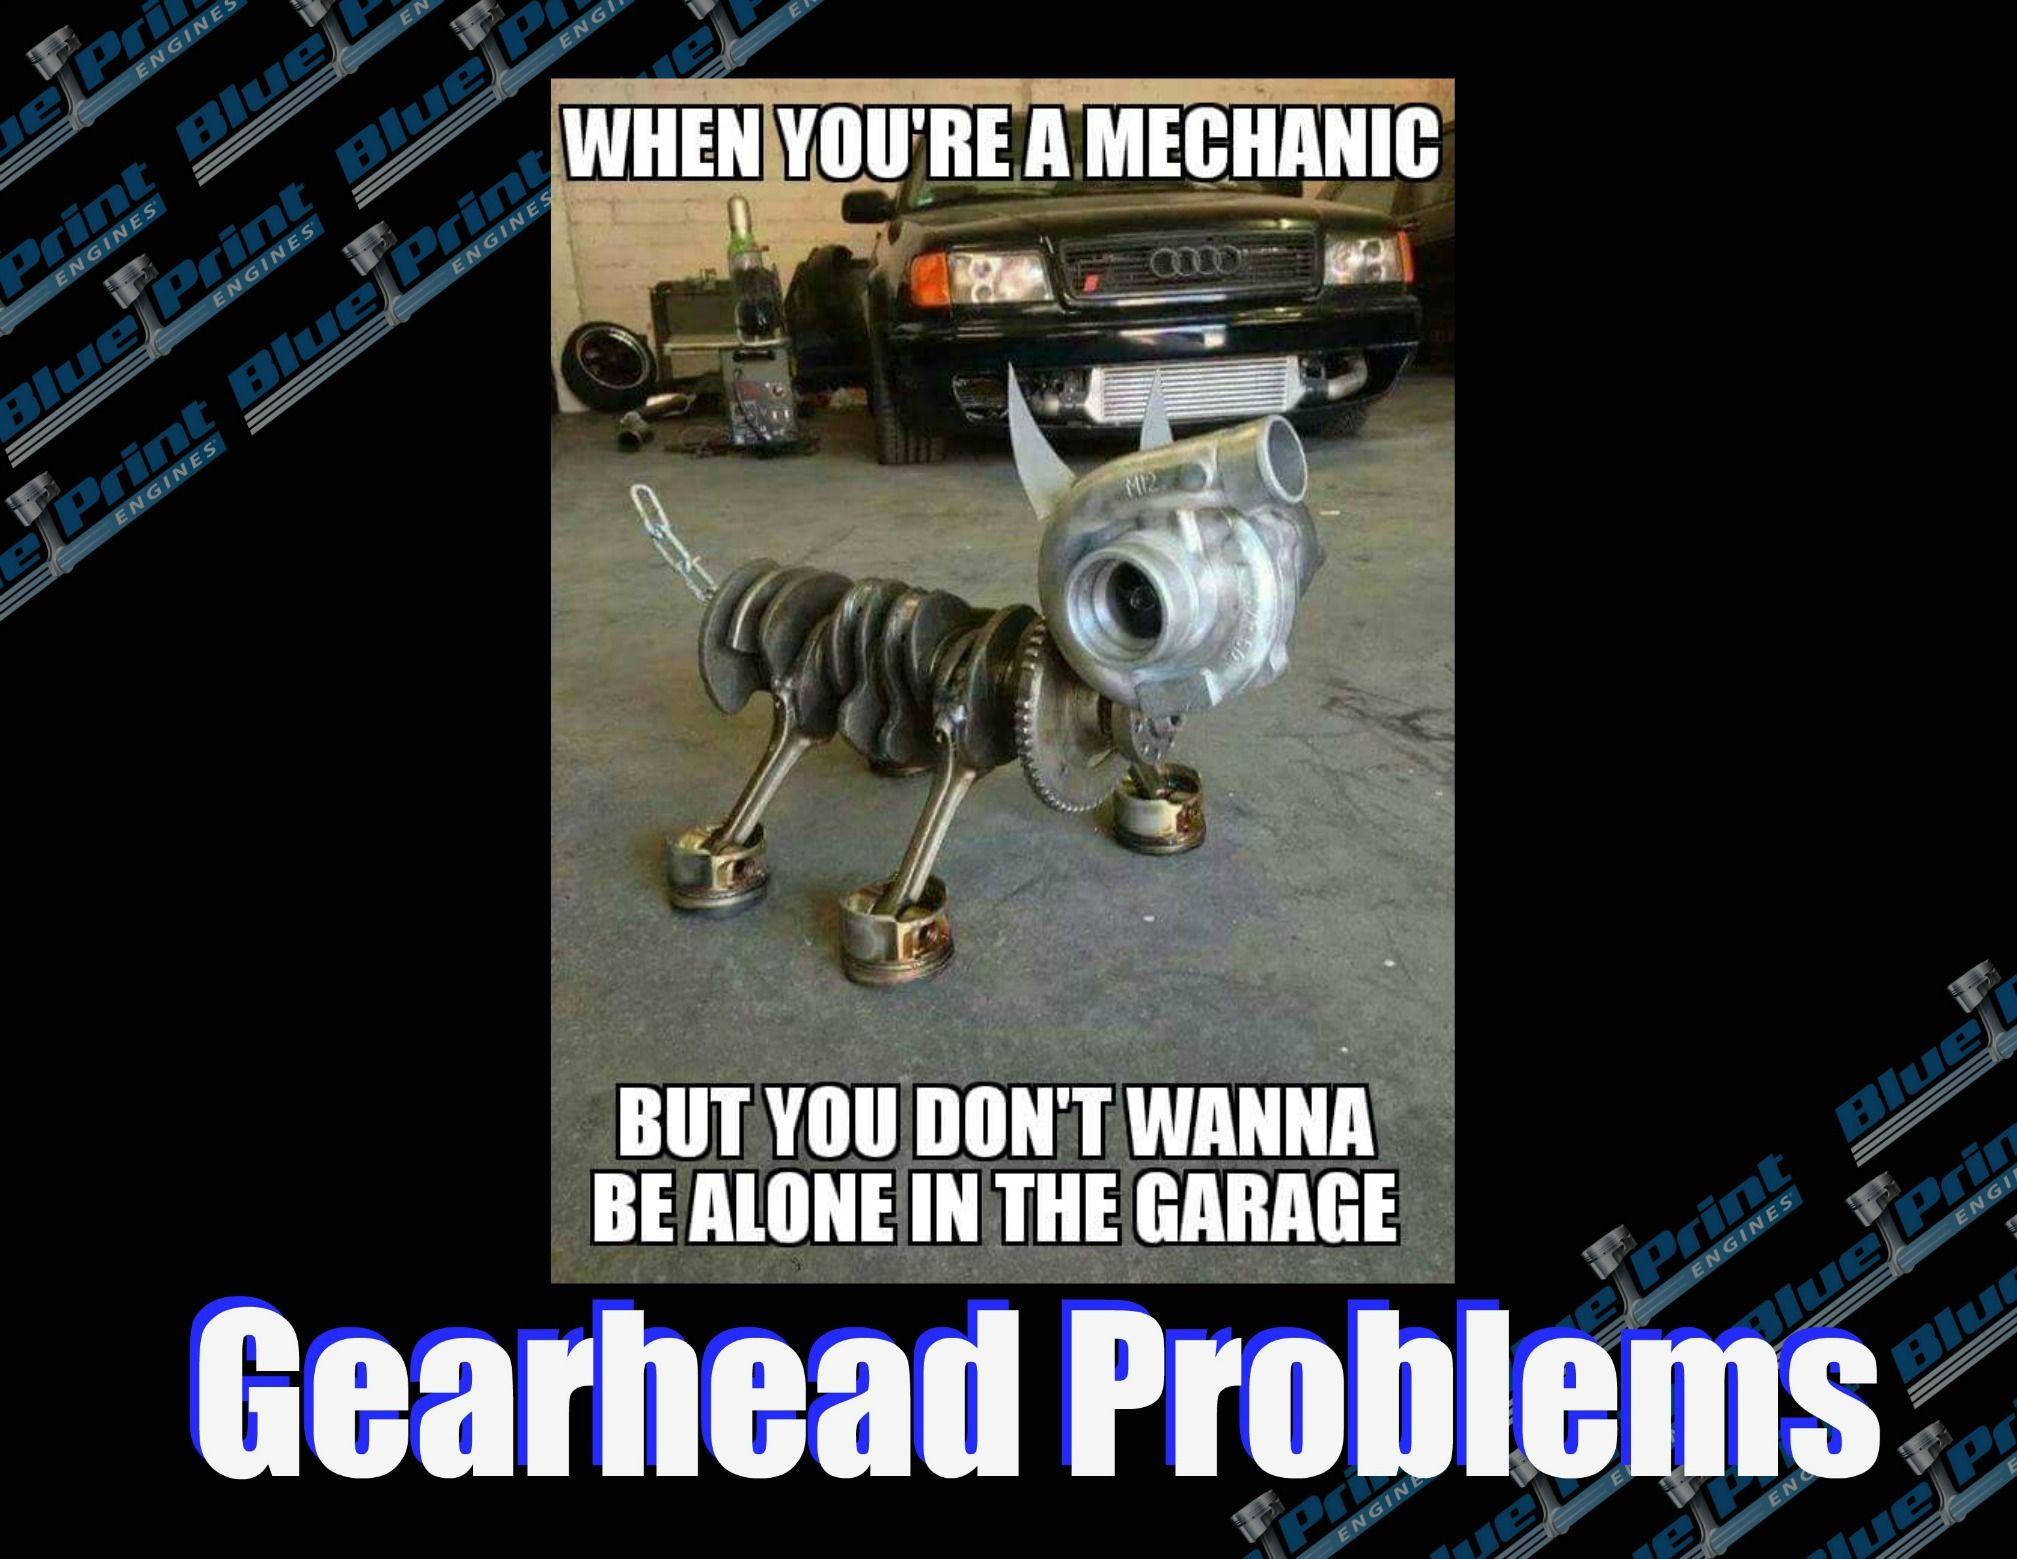 Blueprintengines carparts gearheadproblems car love pinterest blueprintengines carparts gearheadproblems malvernweather Image collections